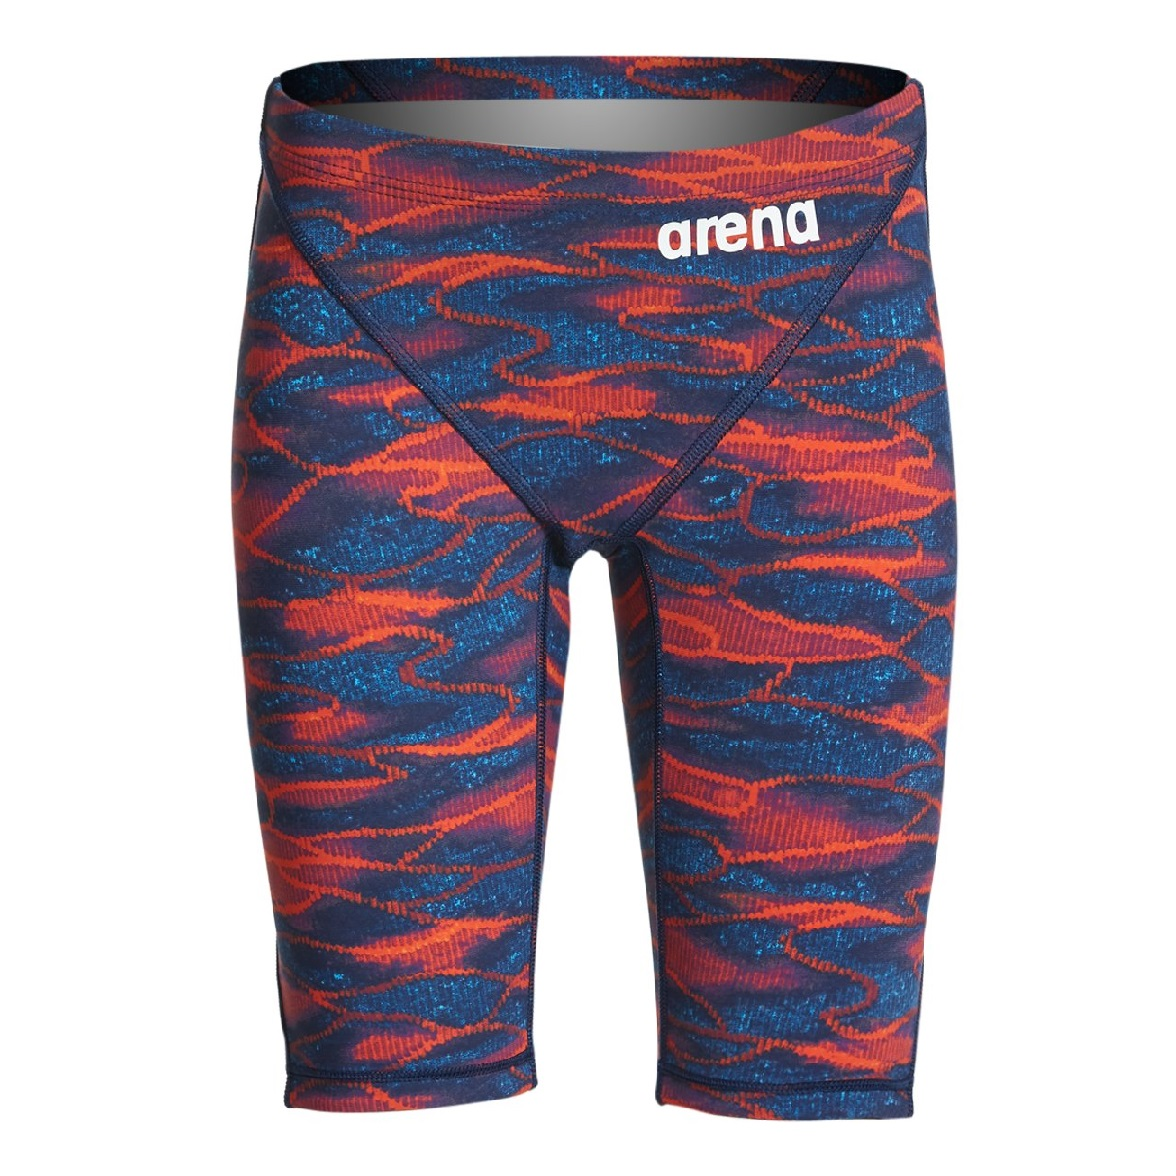 eaf1c5608c2cc Arena Boys Powerskin ST 2.0 Limited Edition Jammer - Ly Sports